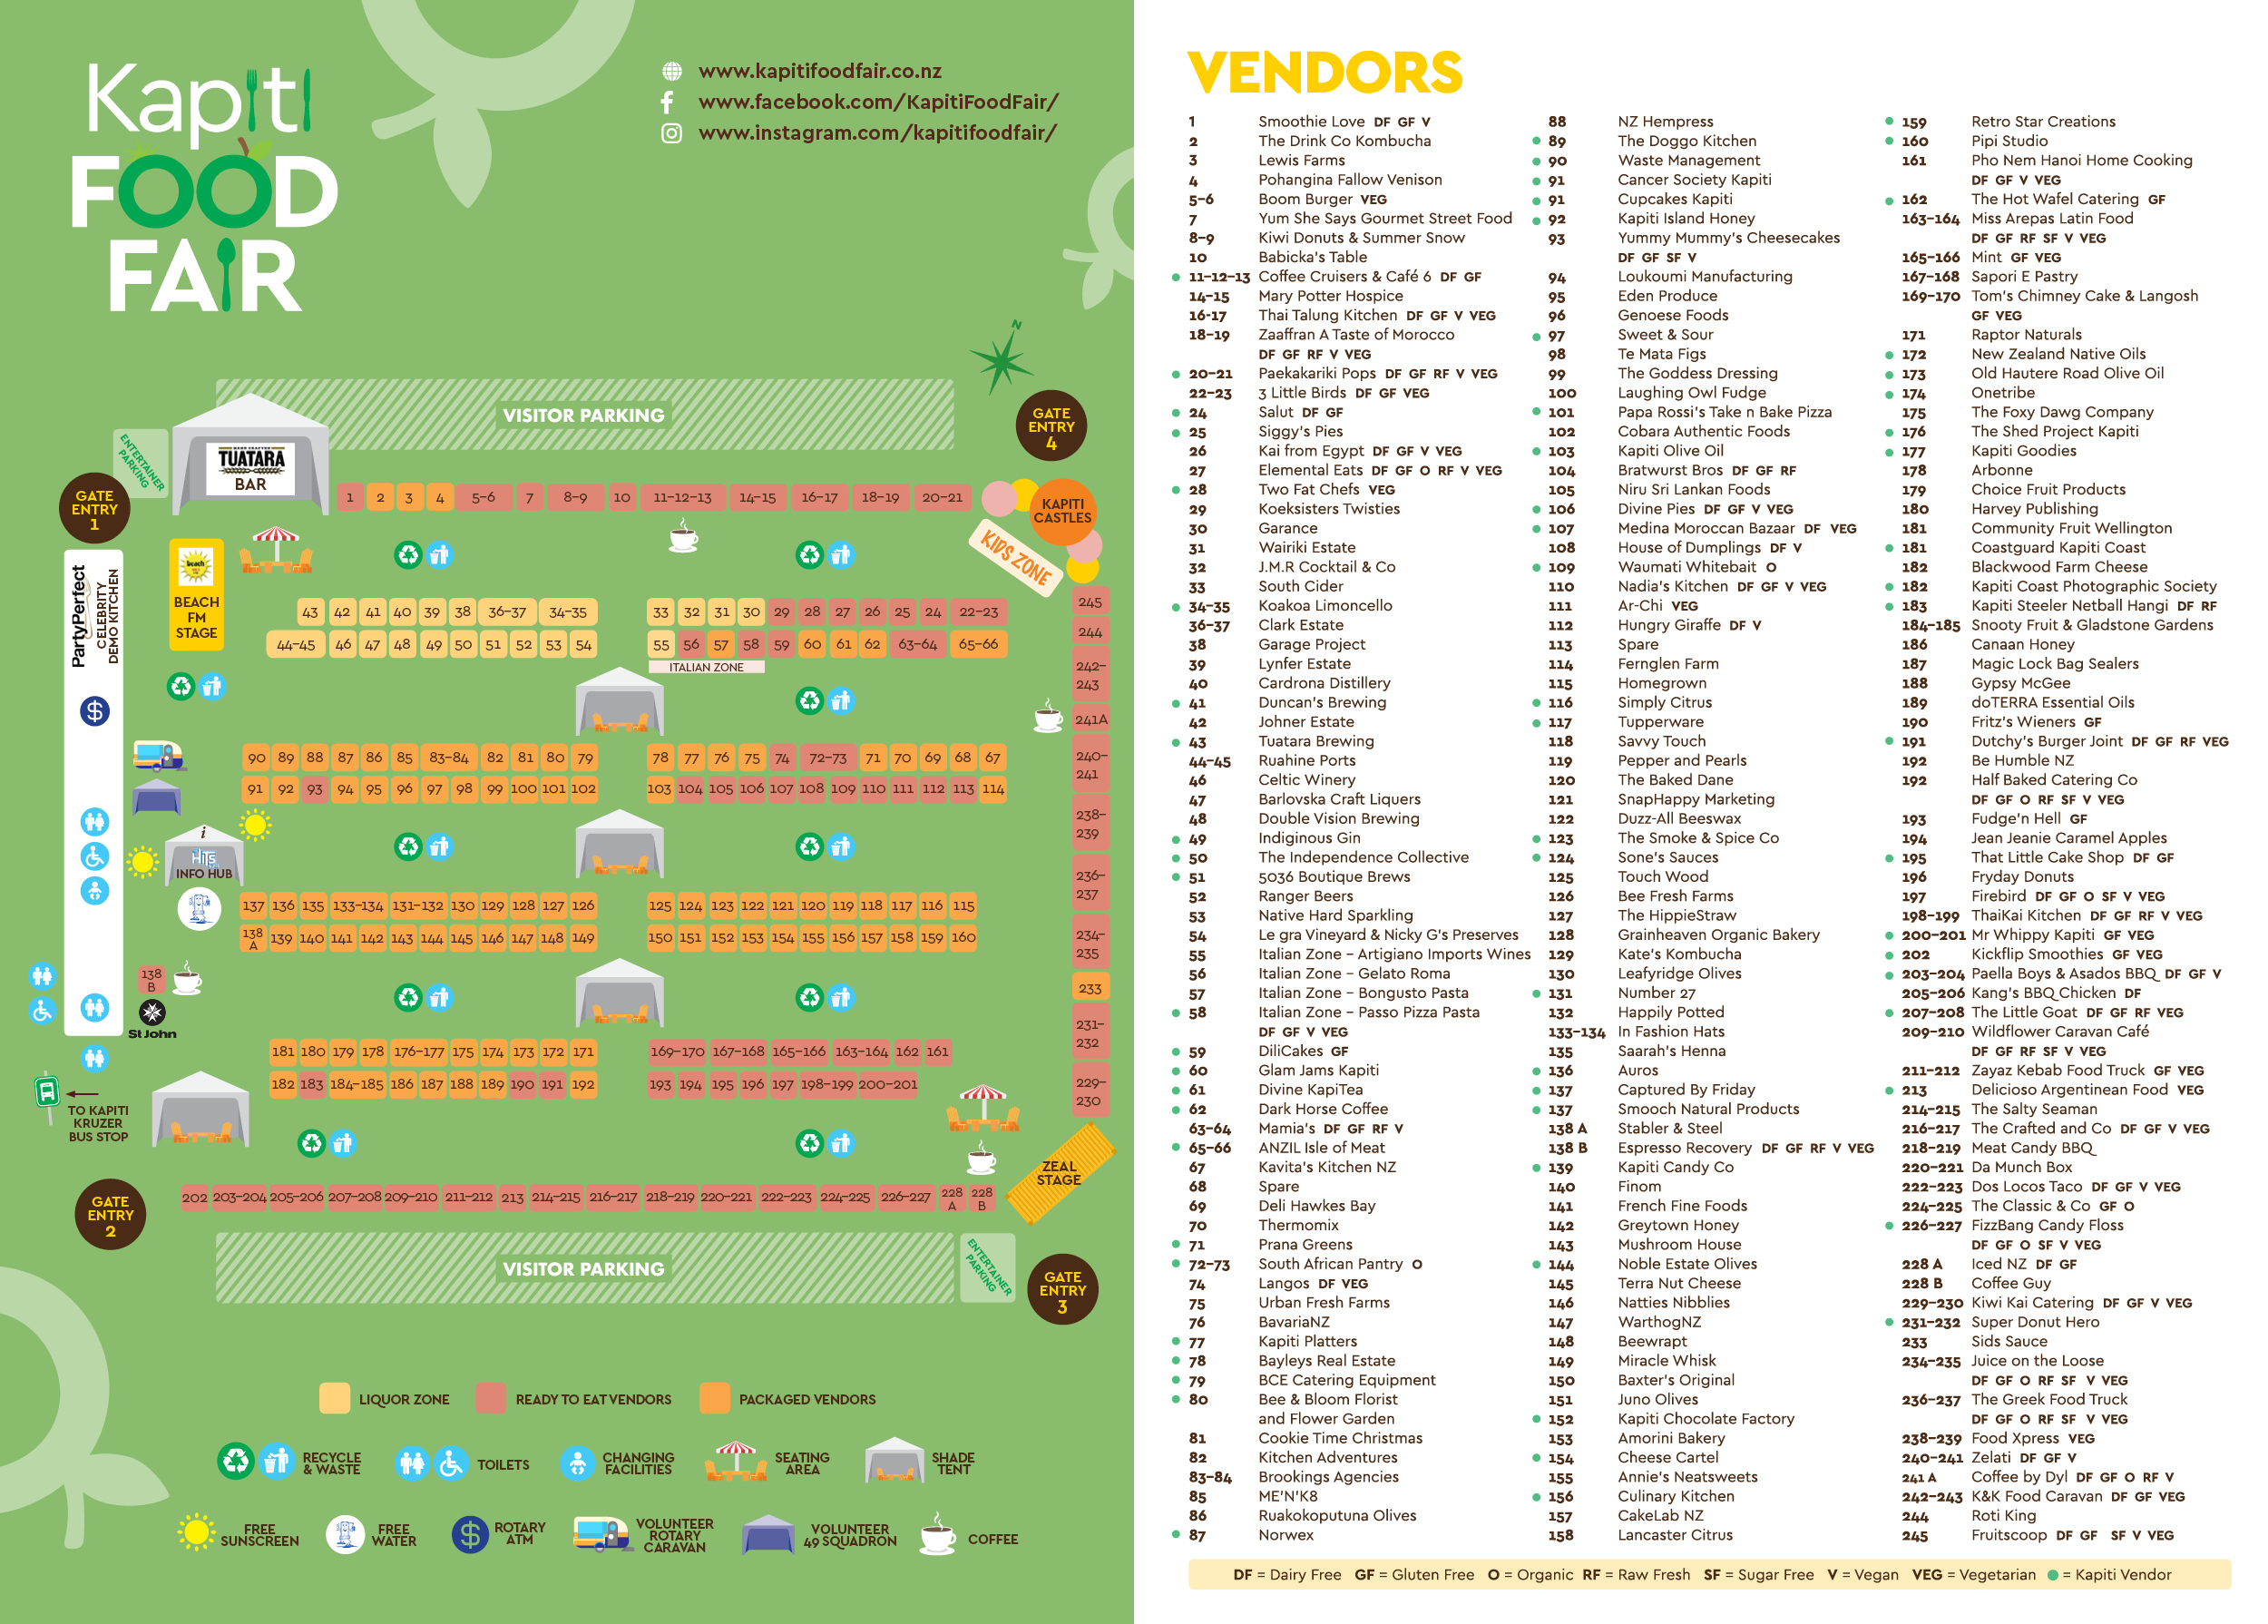 Kapiti Food Fair 2019 Visitor Site Map